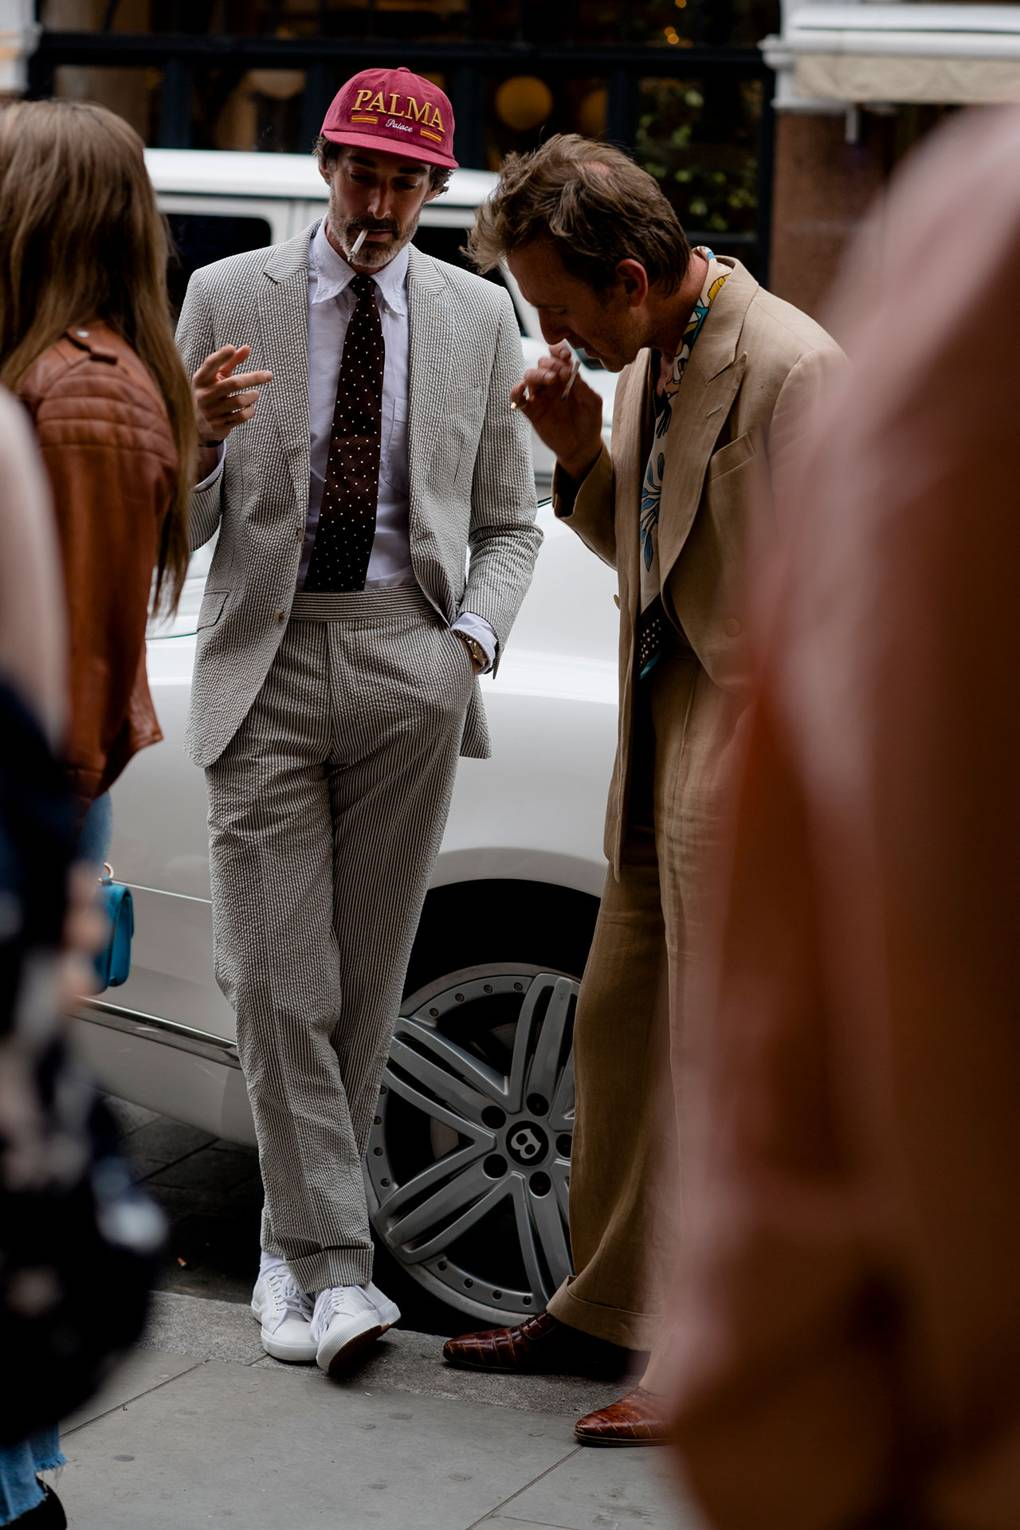 London Fashion Week Men's S/S 2019 Man in Seersucker Suit and White sneakers